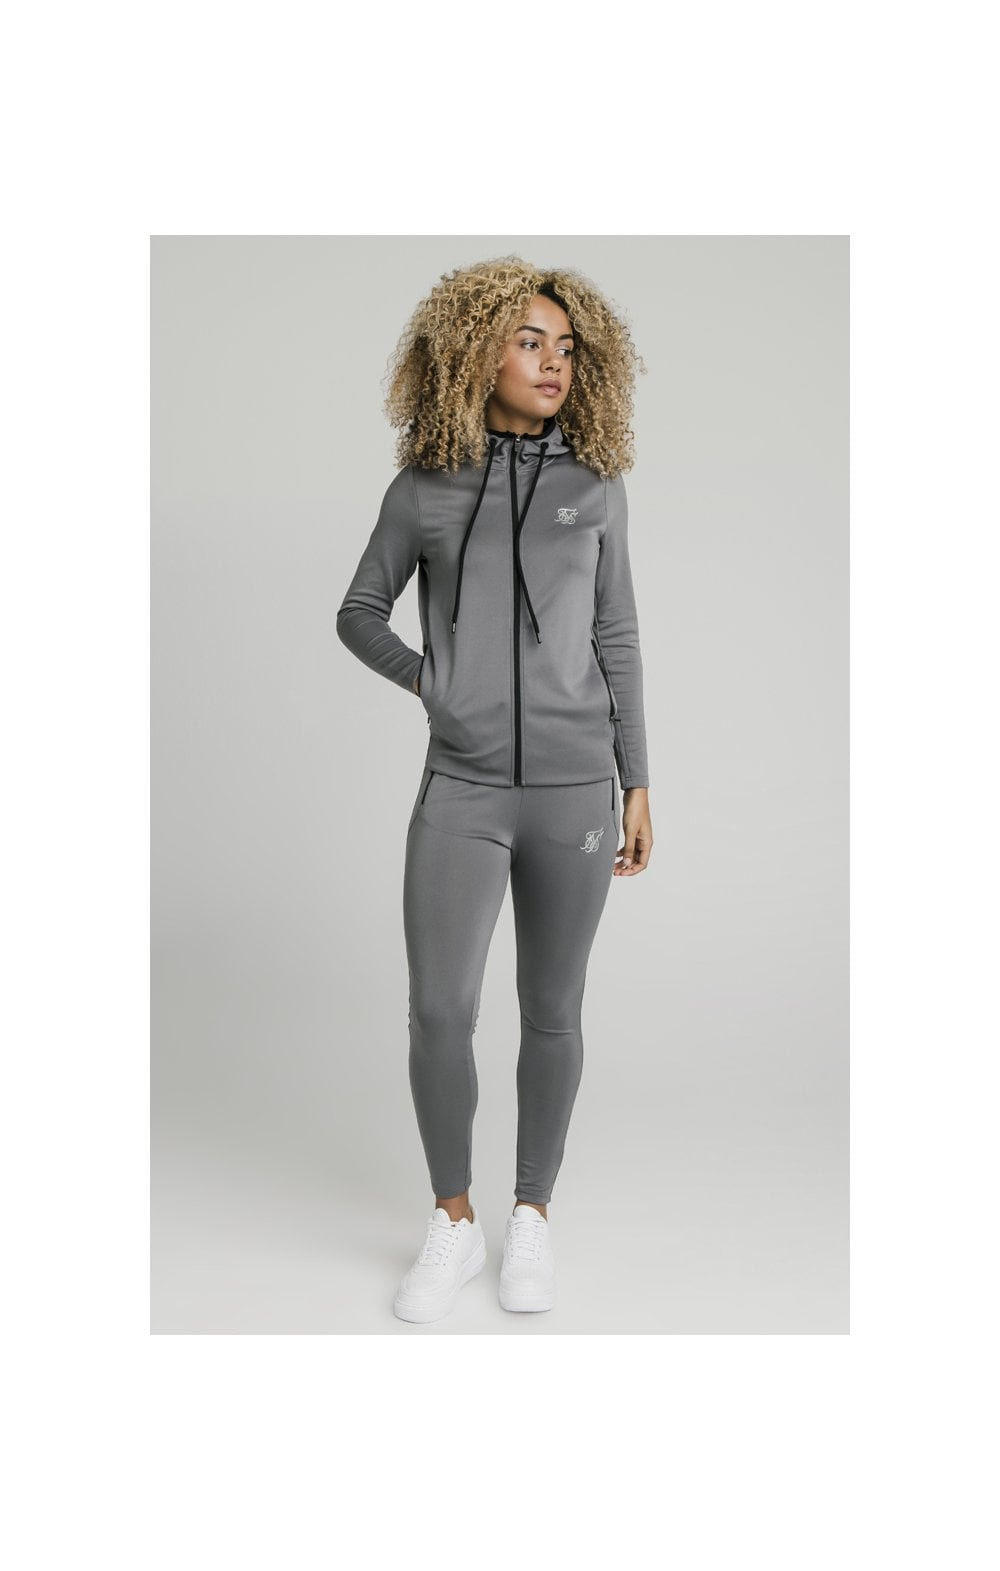 SikSilk Gym Track Jacket - Grey (3)